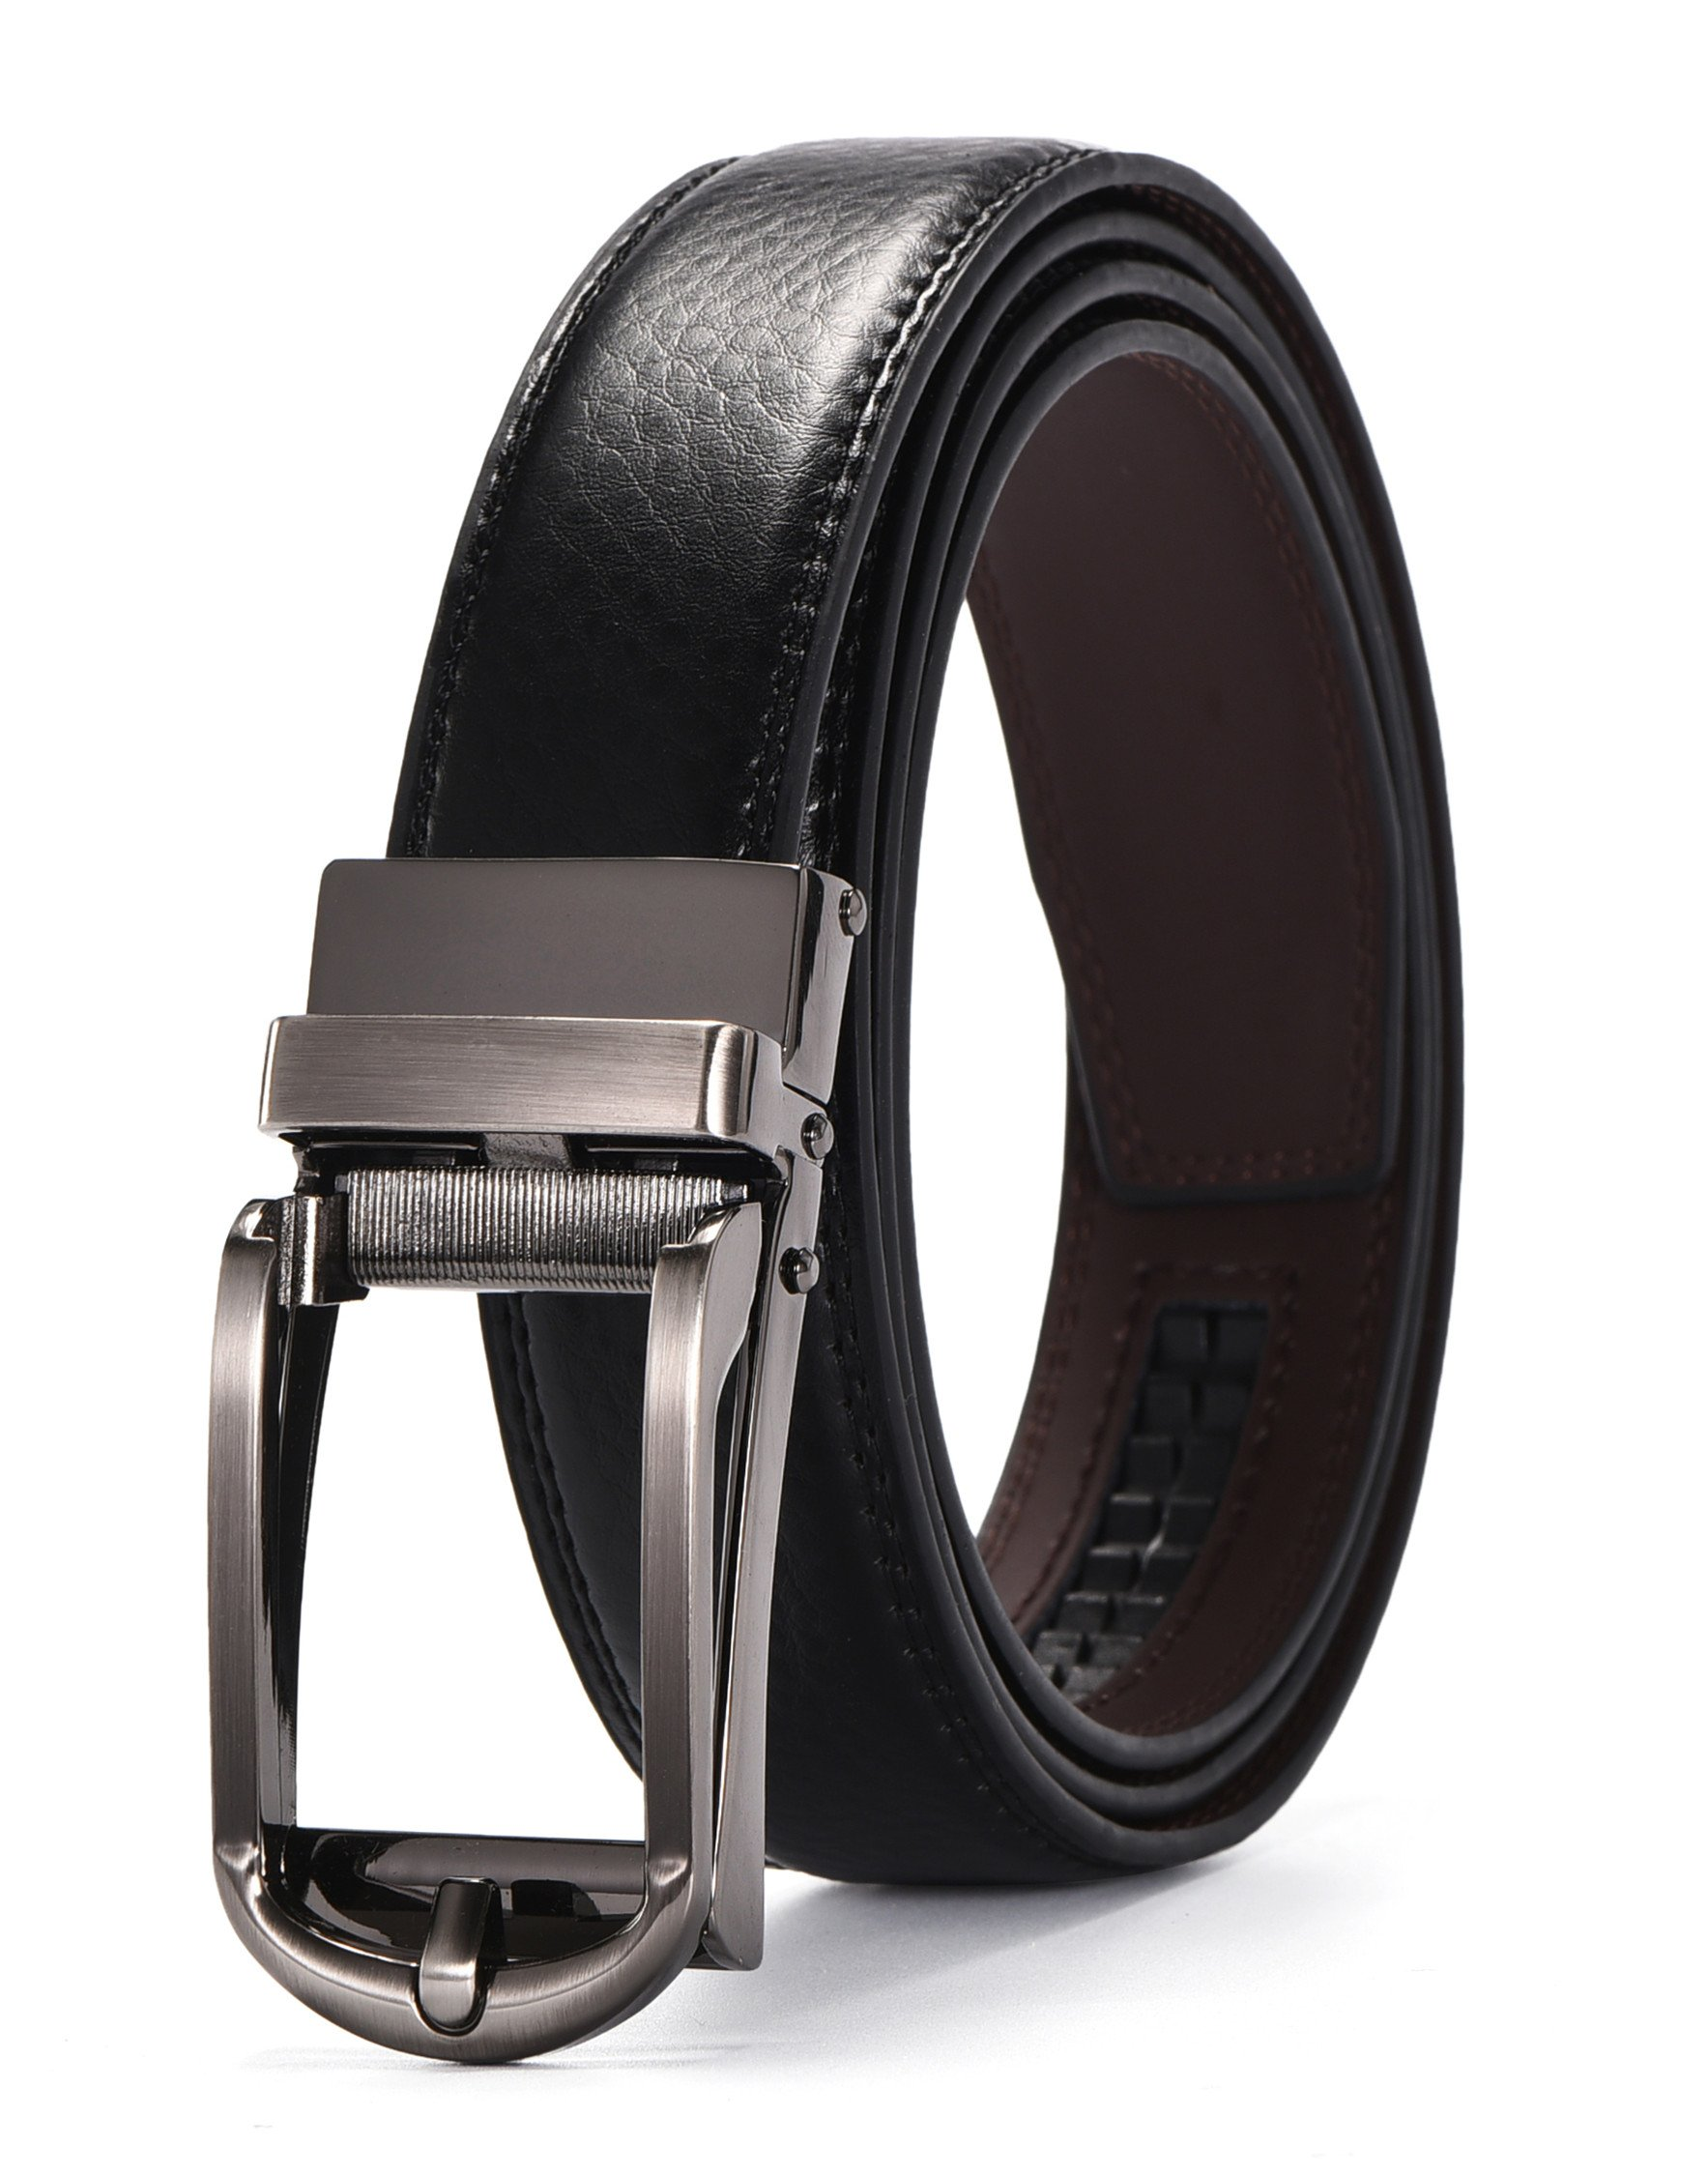 Men's Leather Ratchet Dress Belt 1 1/8'' wide with Automatic Buckle Gift Box (UP TO 54'' Waistline, Black04)